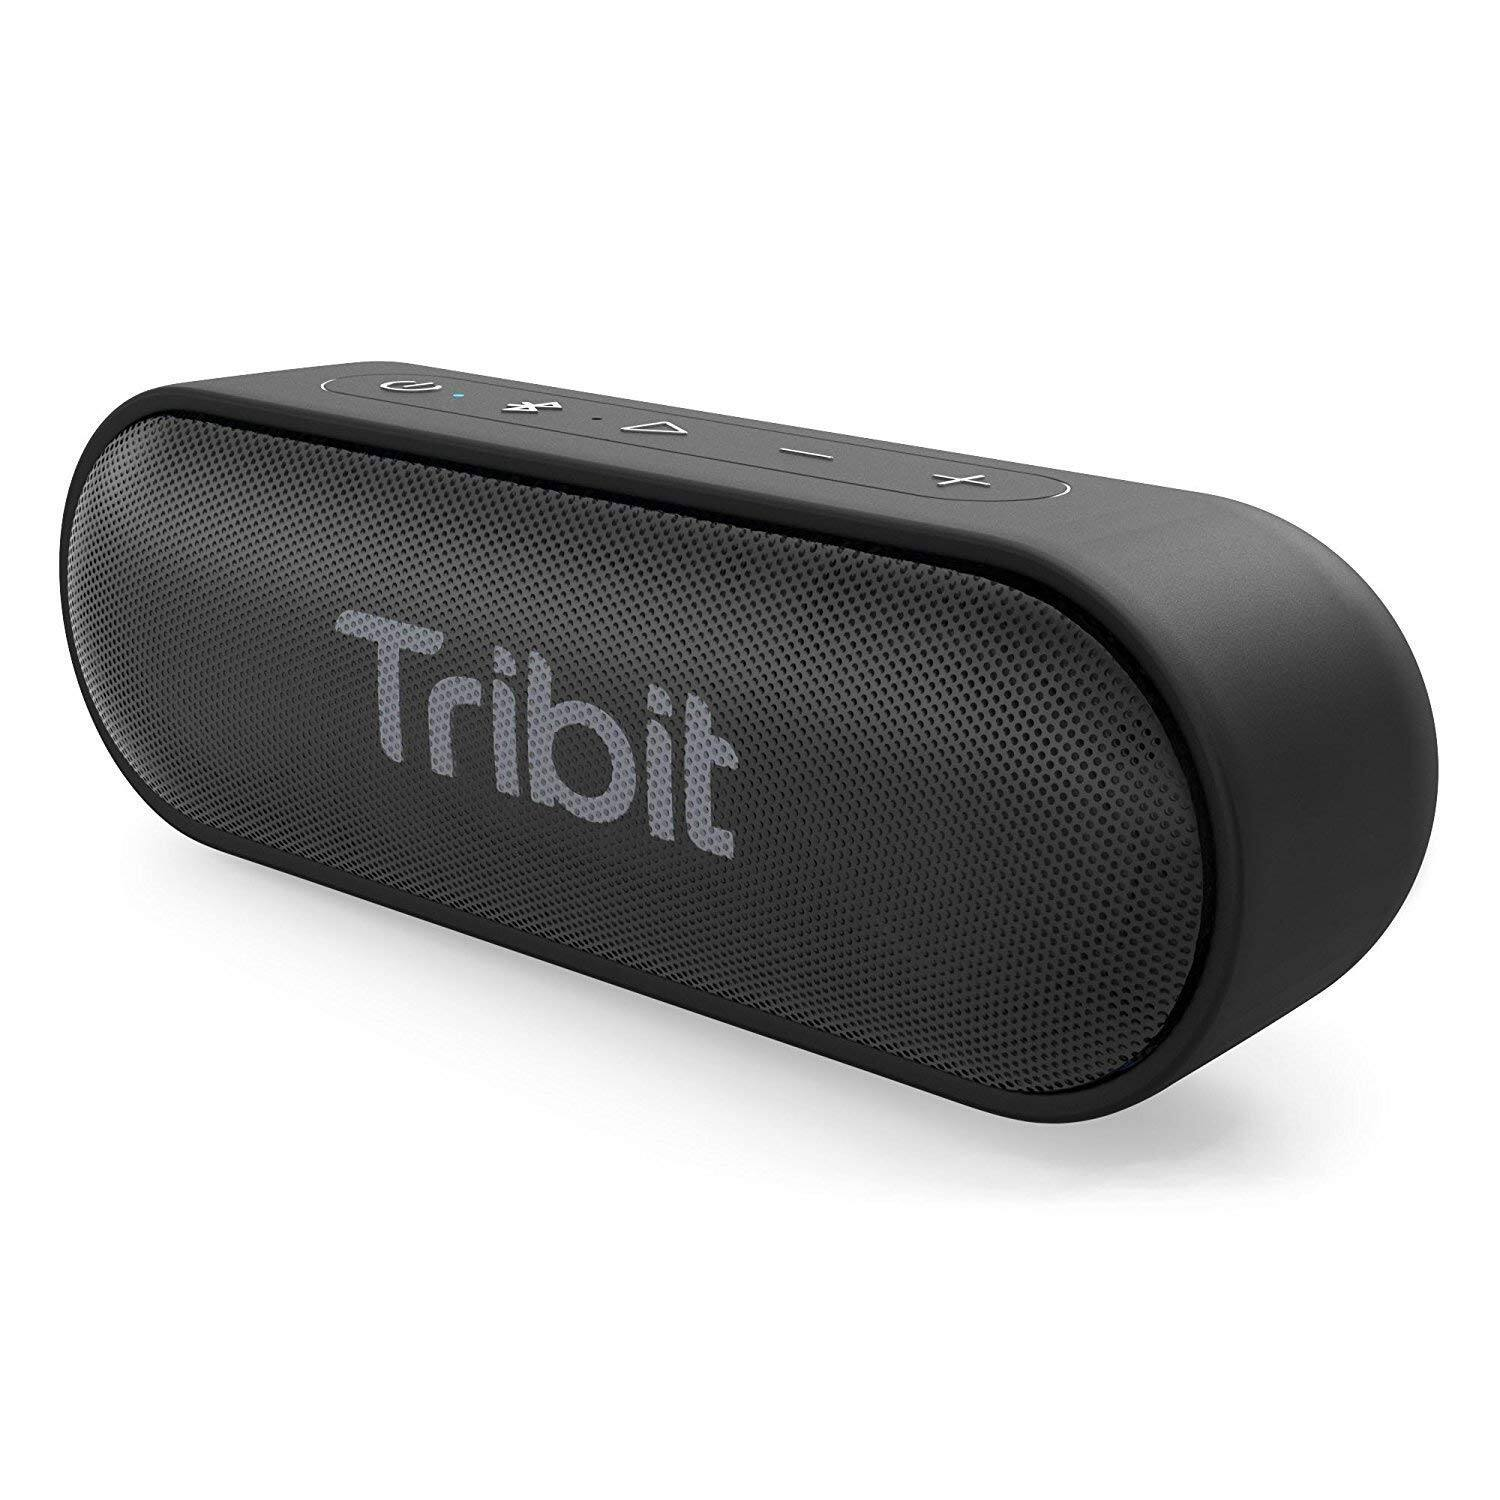 Tribit XSound Go Bluetooth IPX7 Waterproof Stereo Sound Speakers for $23.39 after stacking coupons @ Amazon